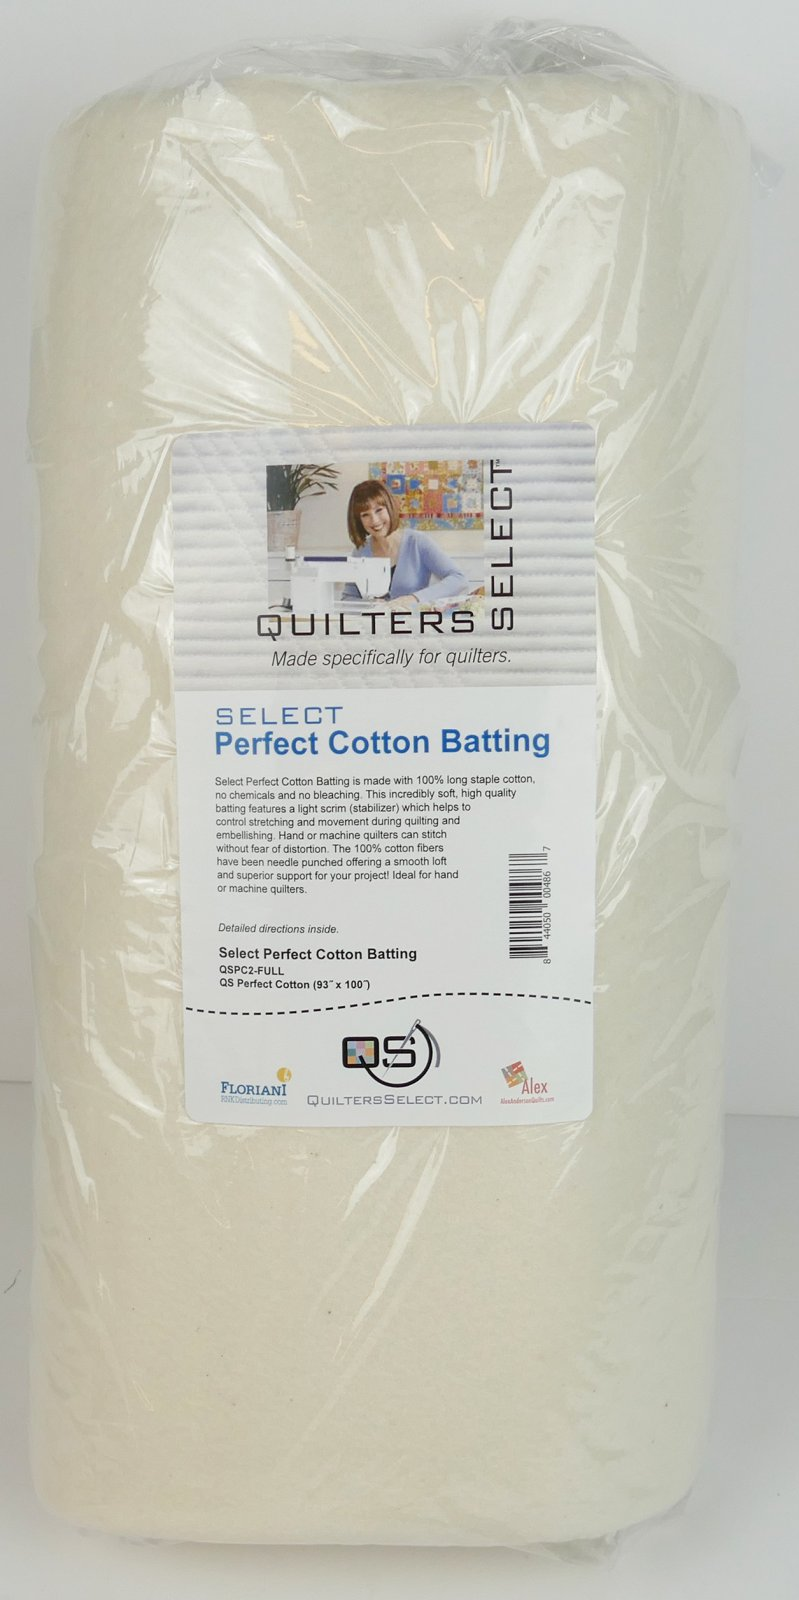 Select Perfect Cotton 93 x 100 - Full  Cut - NEW SIZE!